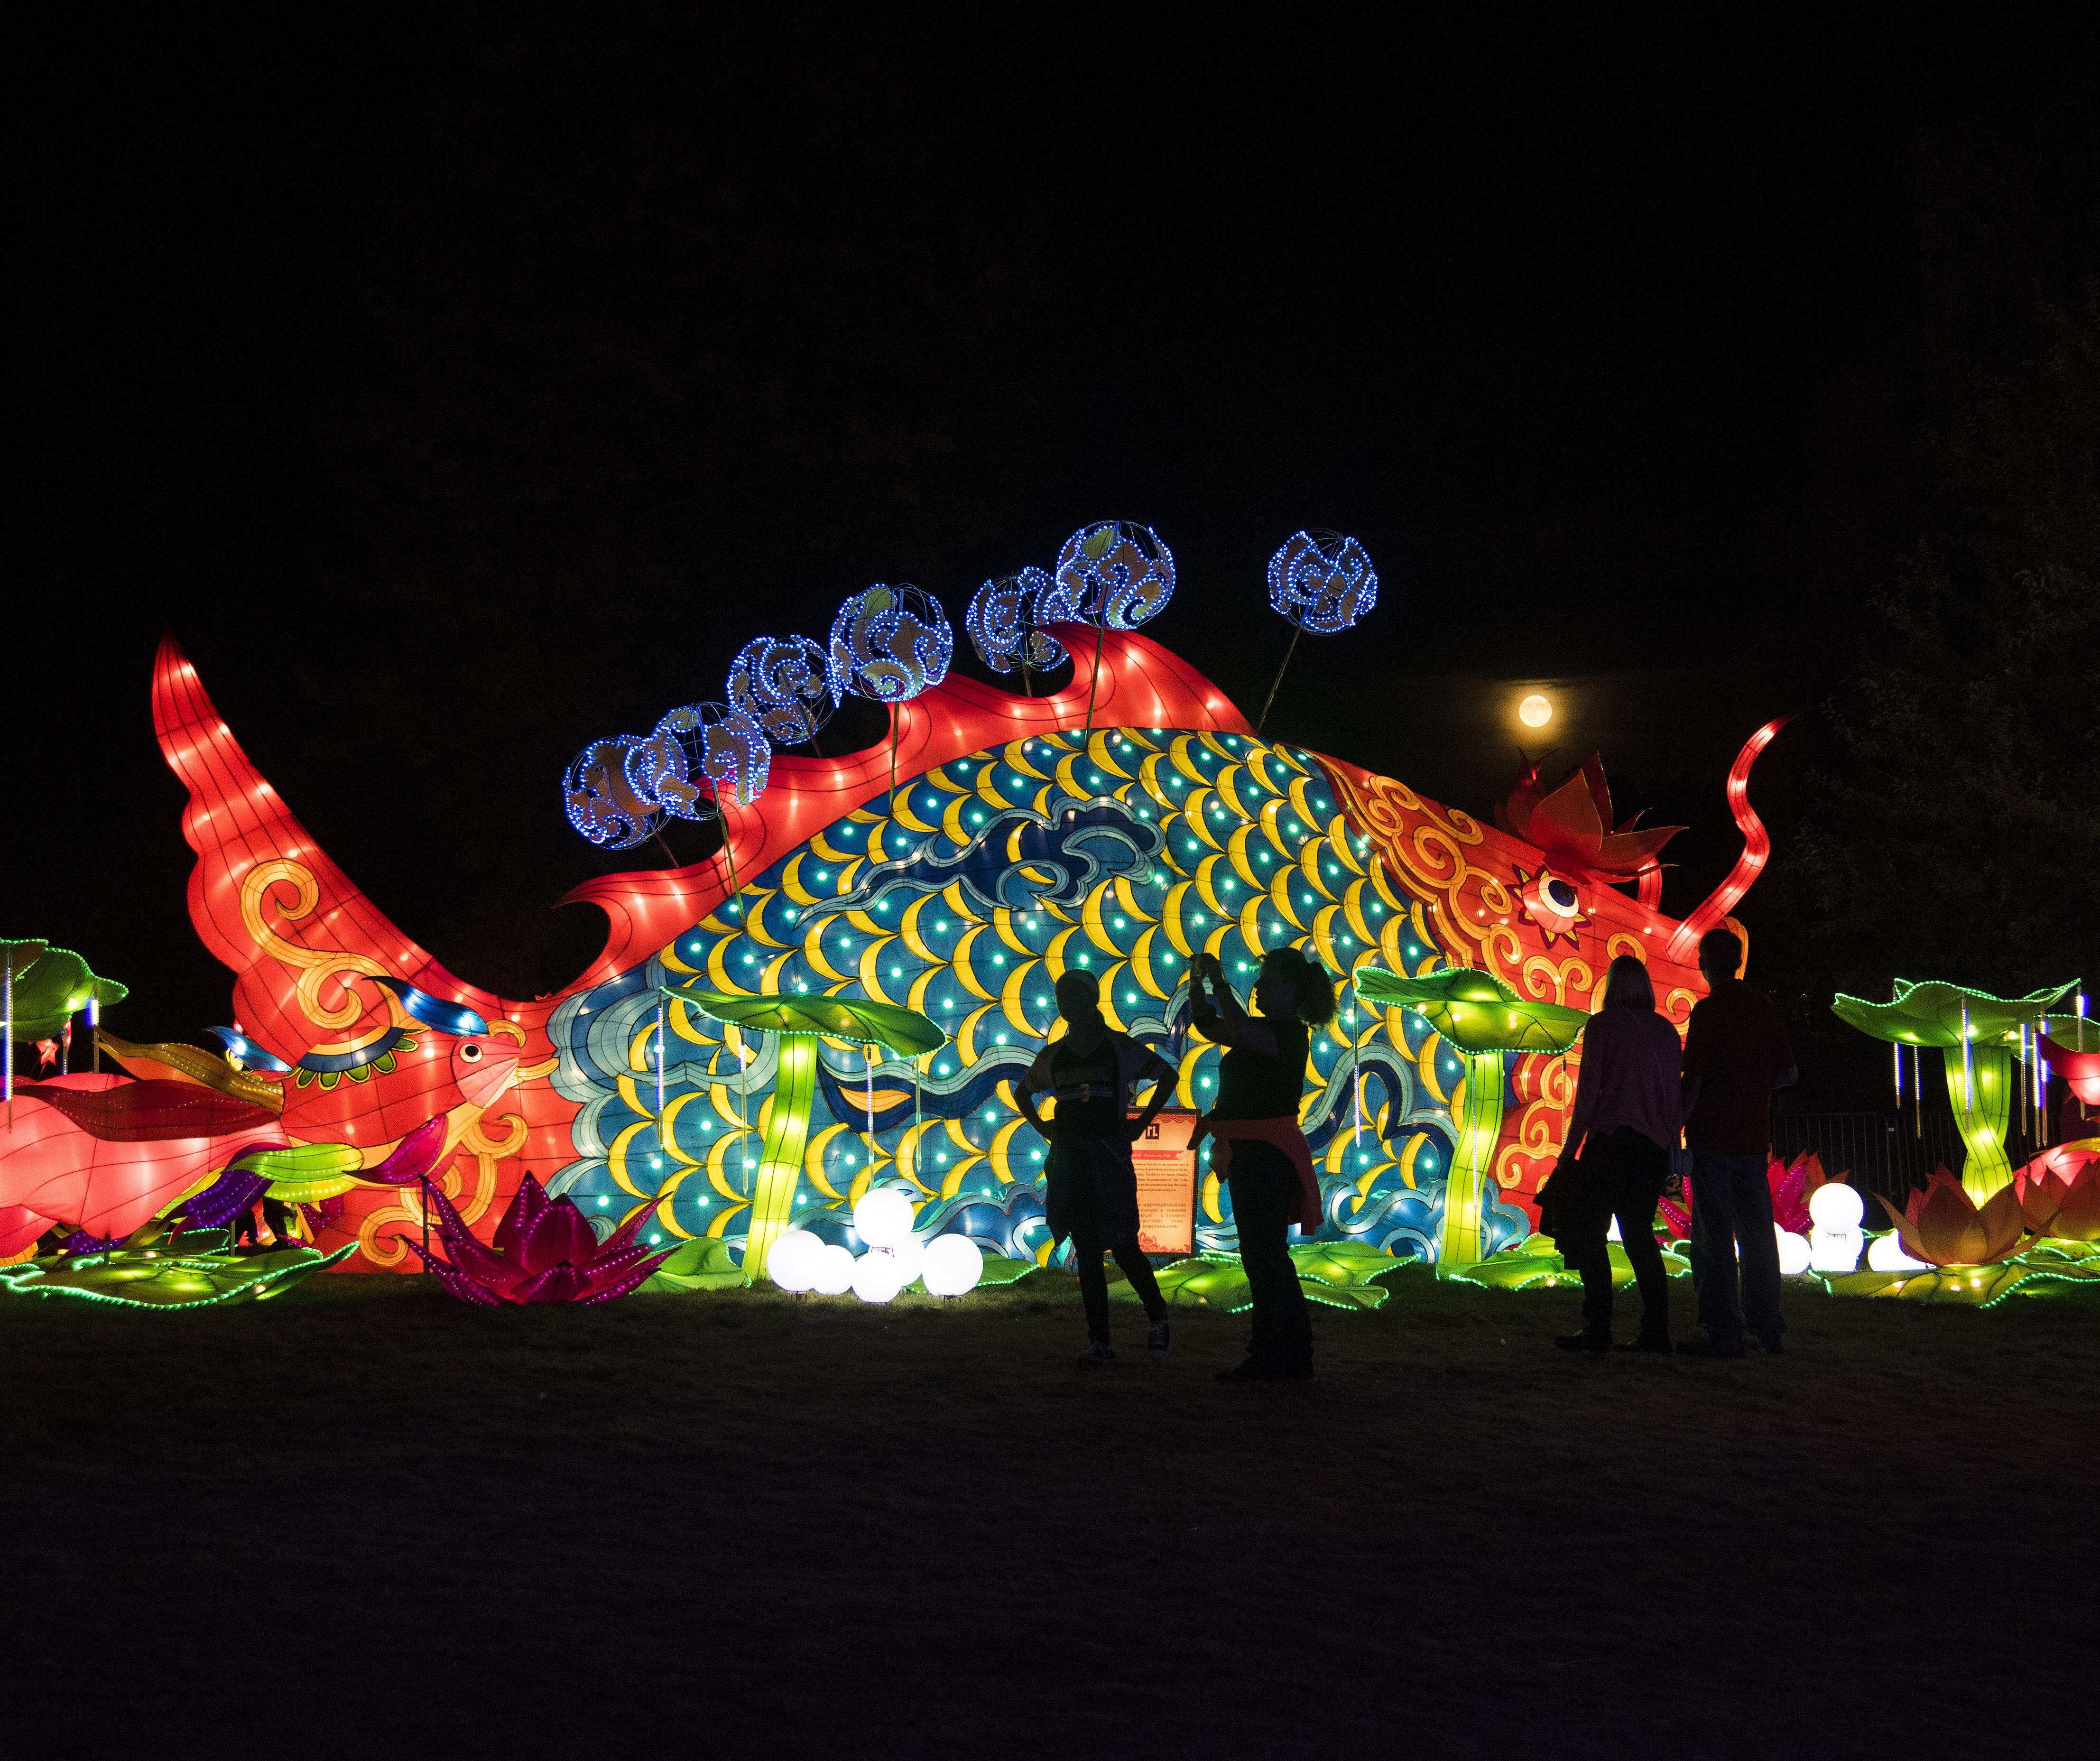 vistors watched the full moon rise over the prosperous fish lantern display in riverfront park when